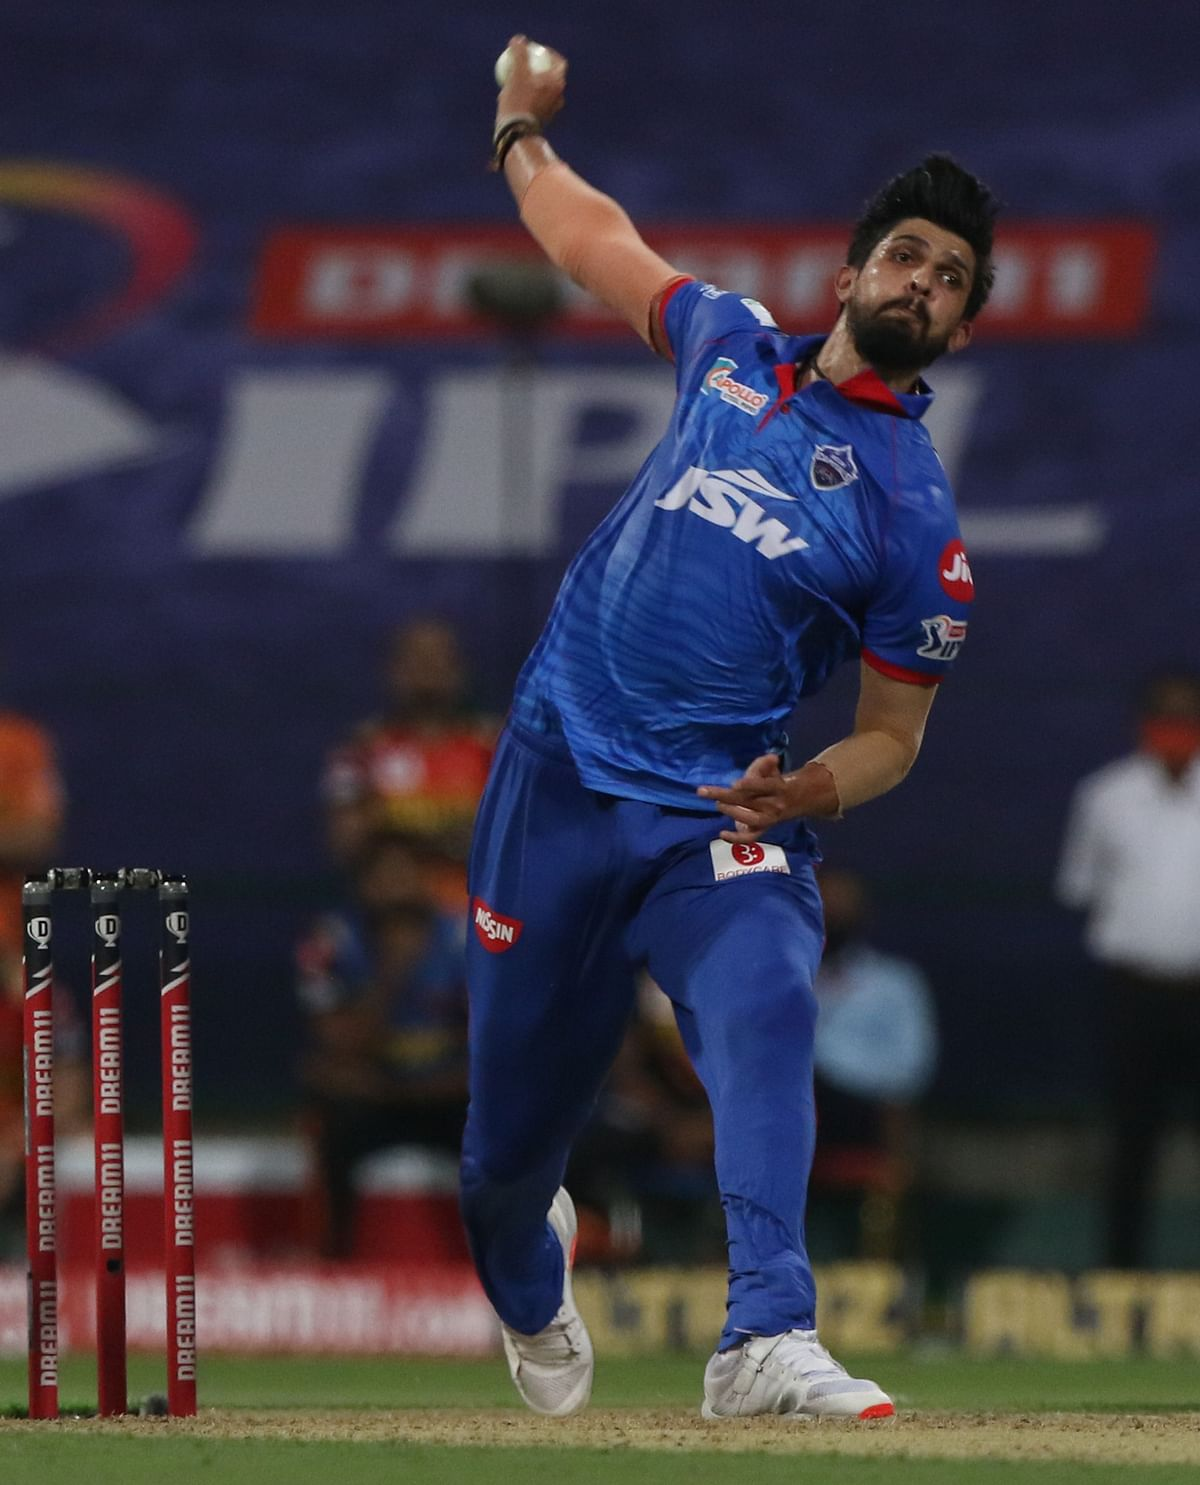 Delhi Capitals' pacer Ishant Sharma injured himself in the training before the start of the IPL